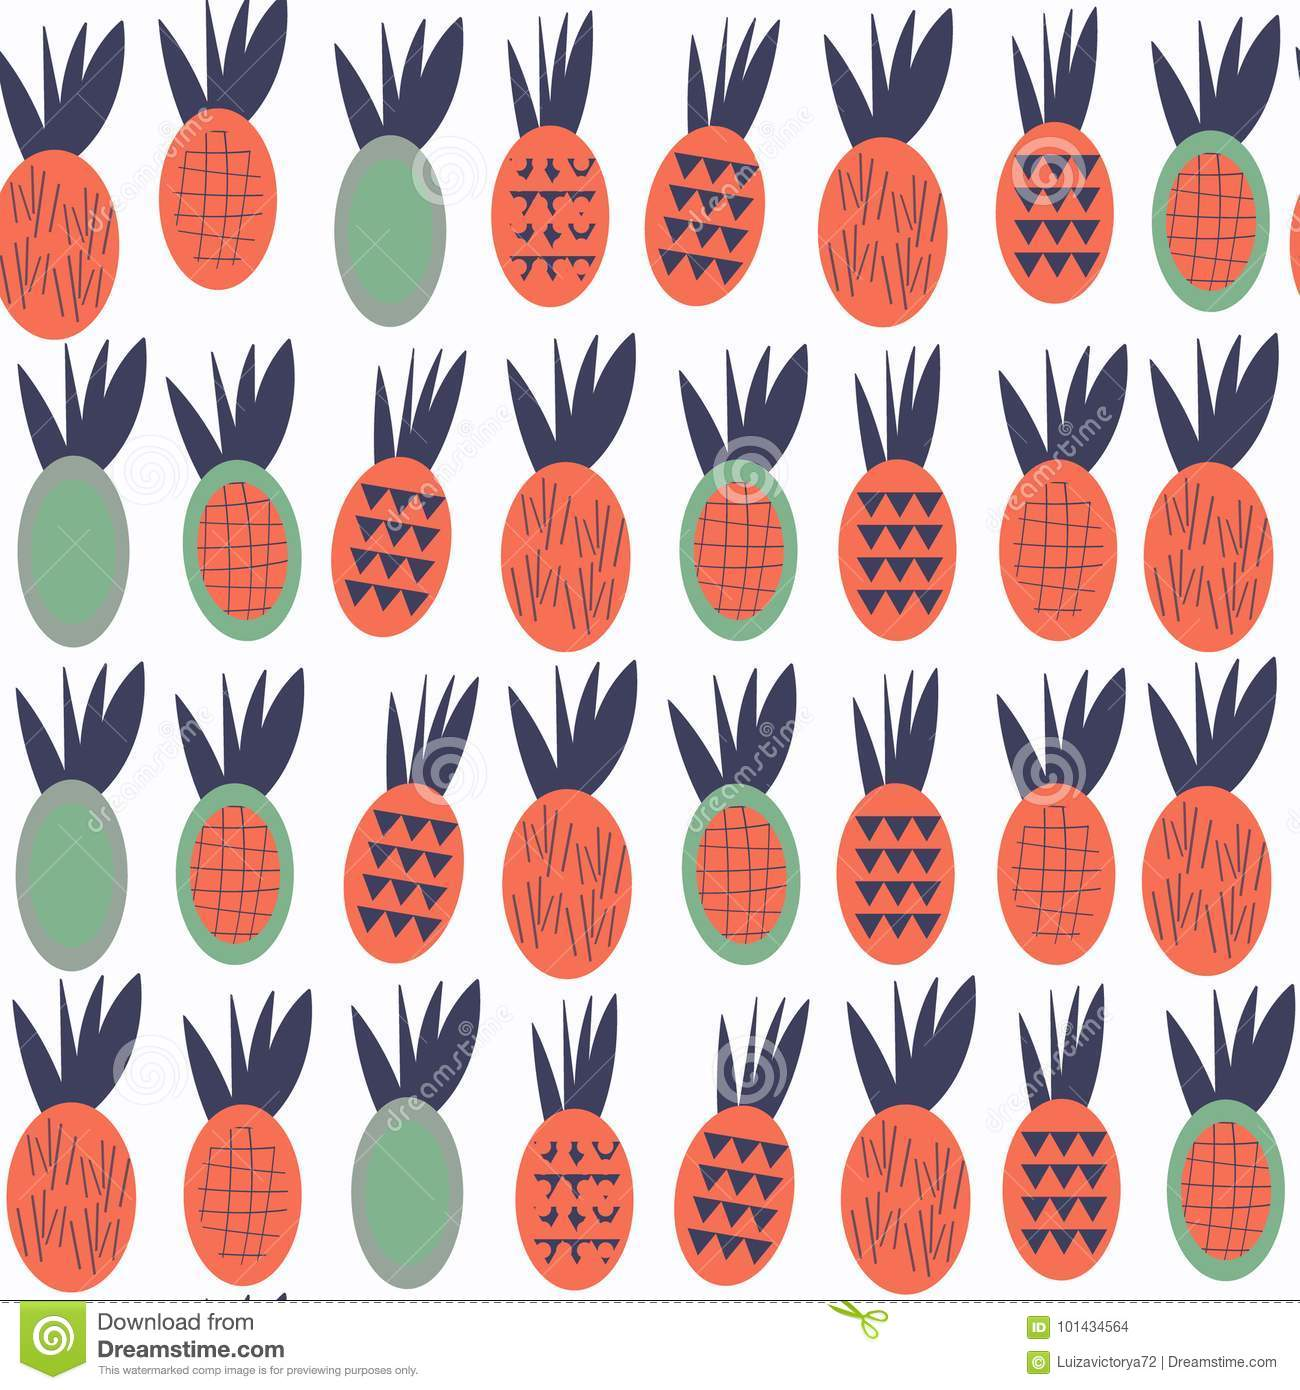 Pineapples seamless abstract fruits patten. It is located in swatch menu, vector image